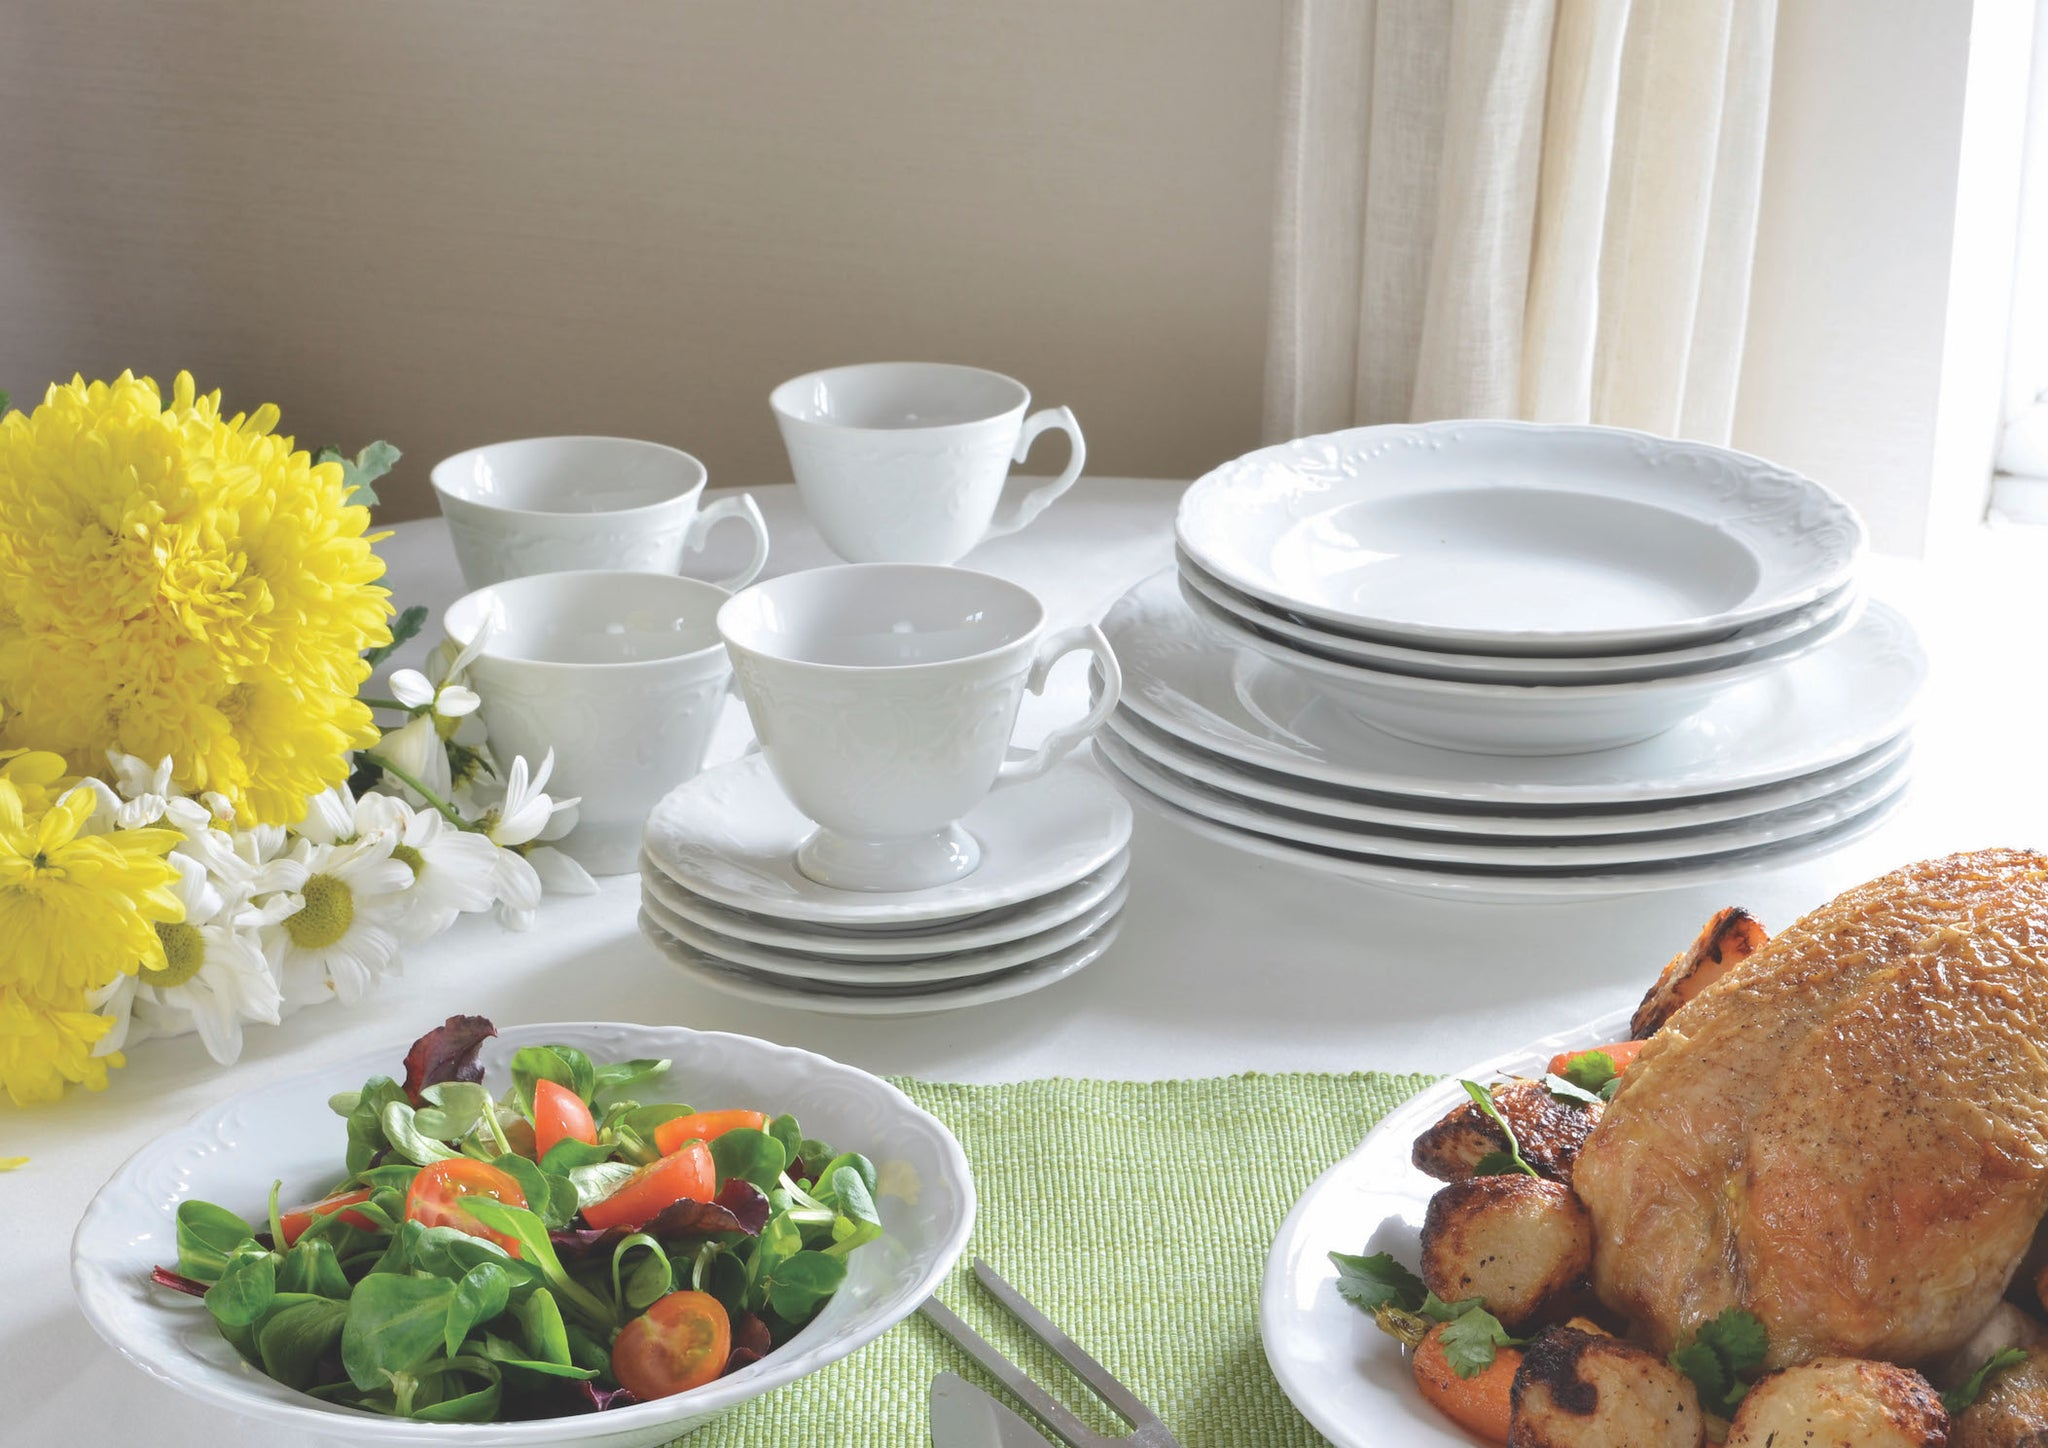 Canterbury Collection Soup Plates